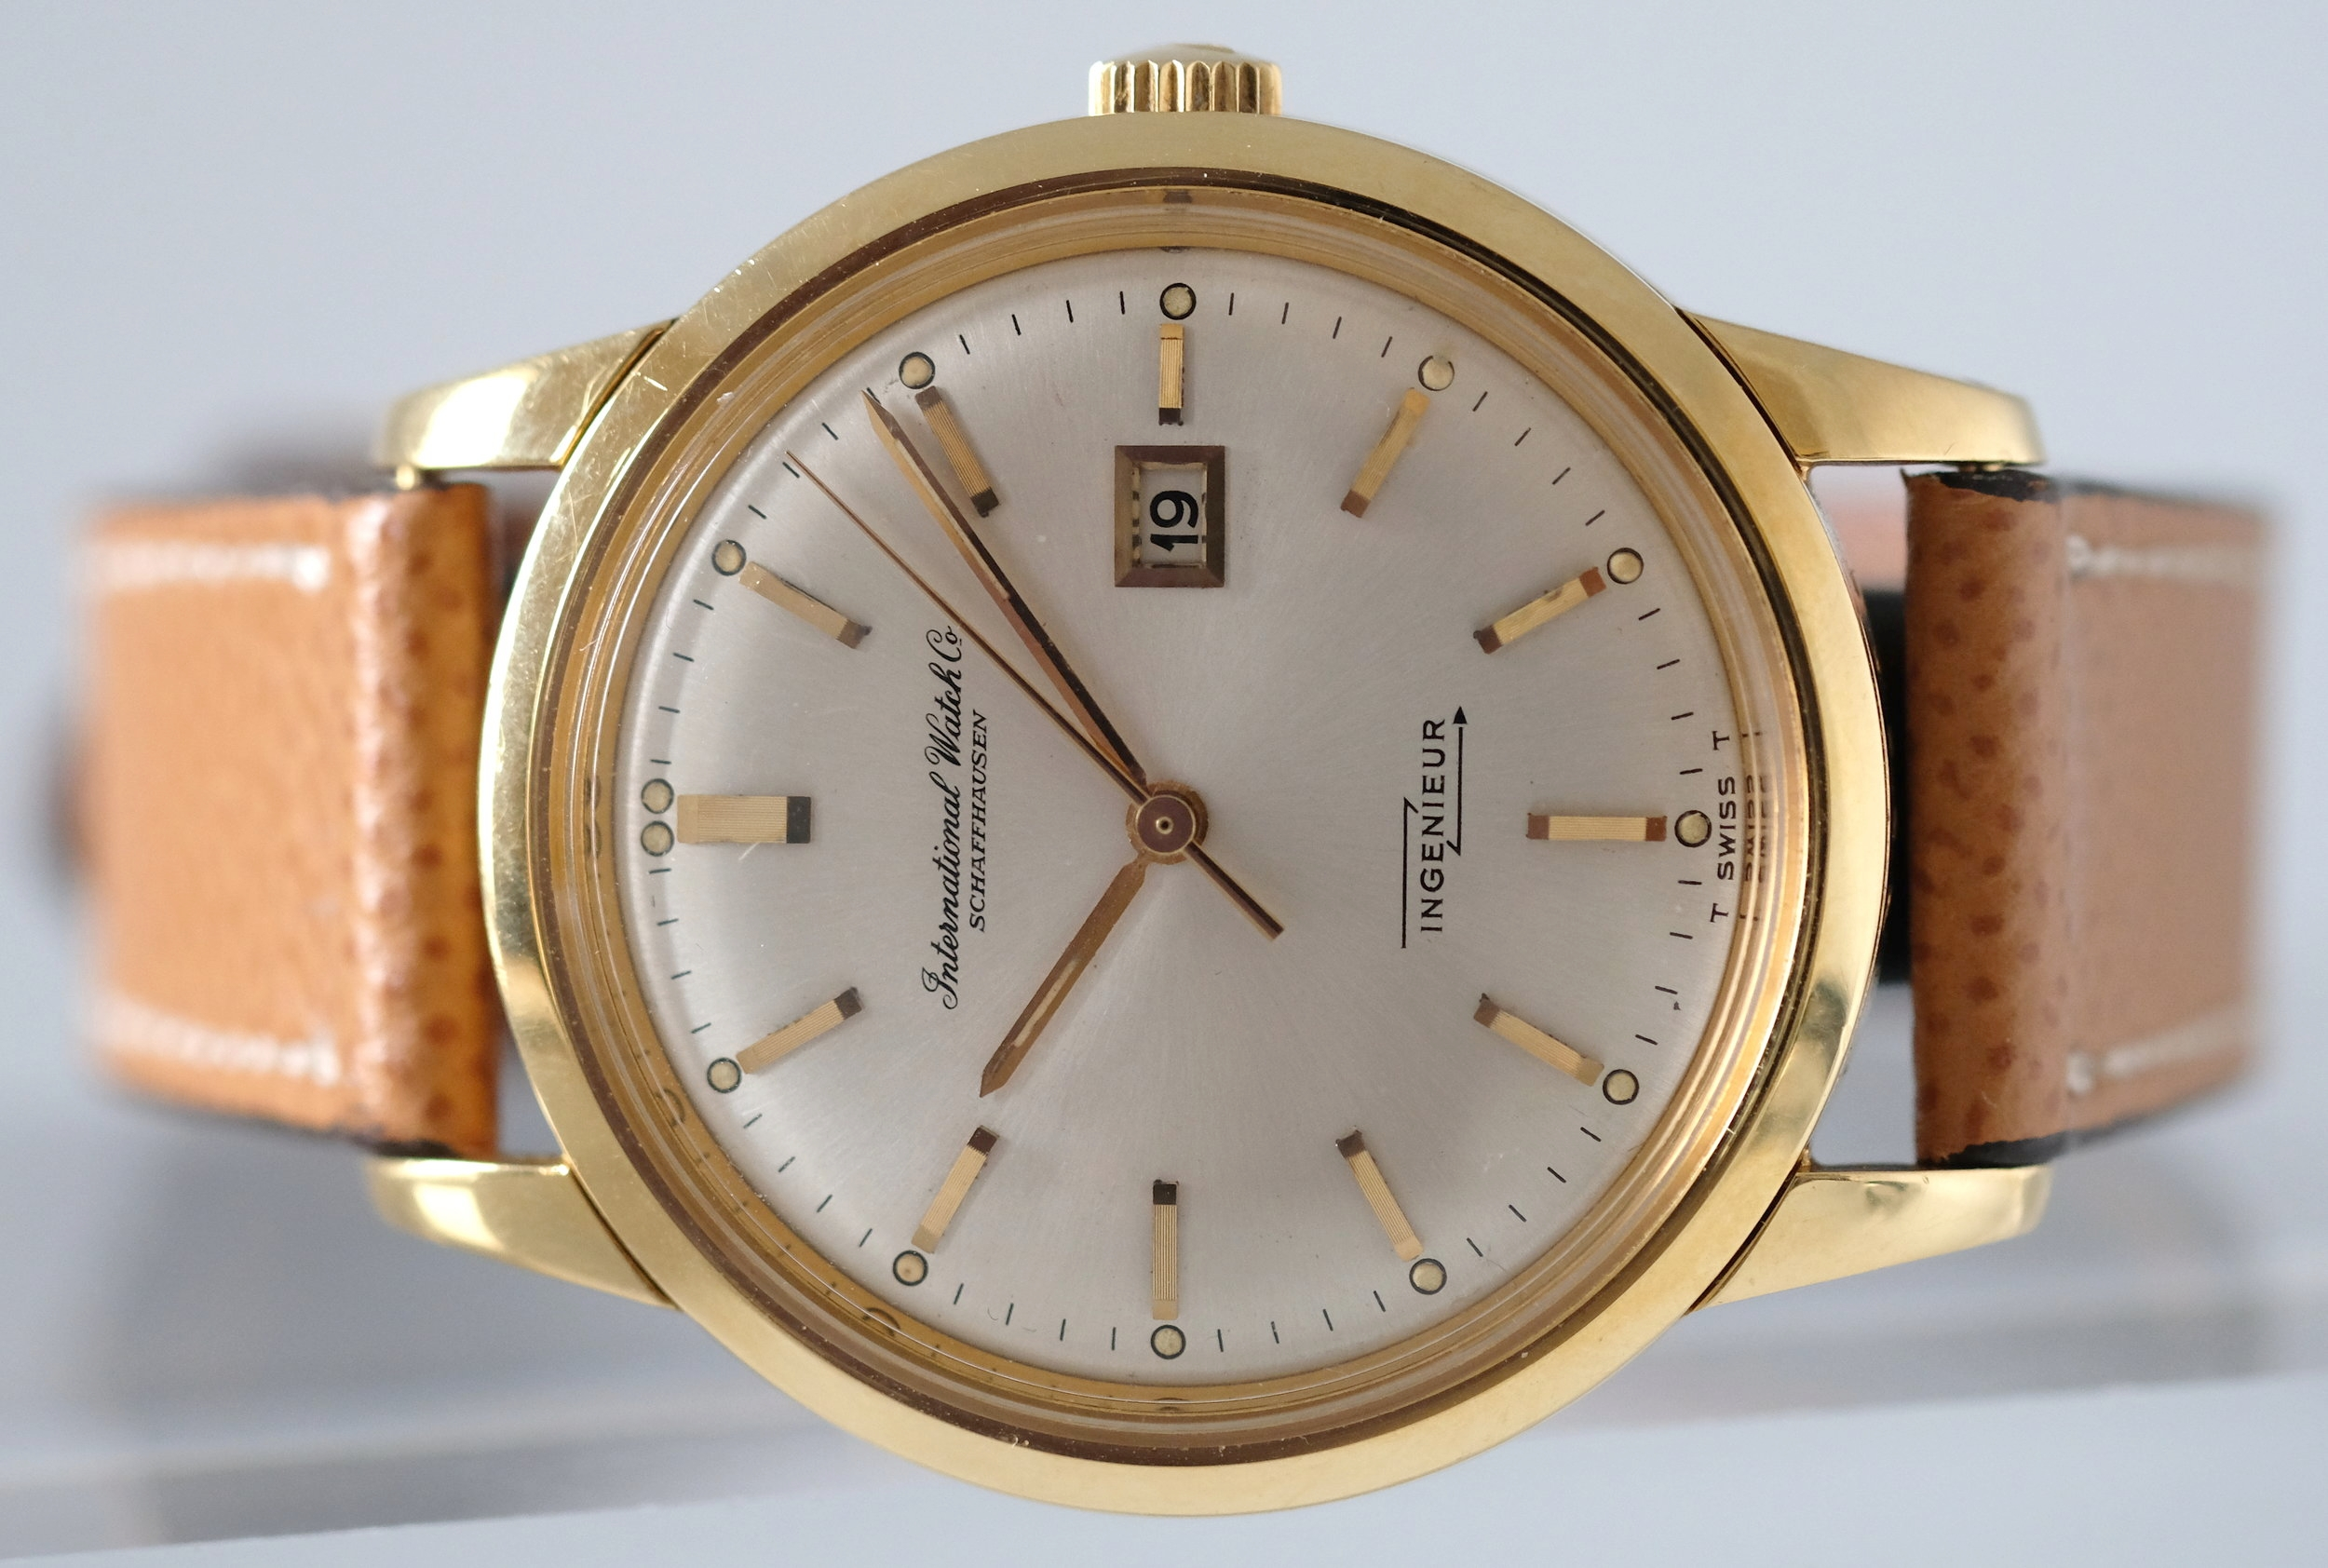 IWC Gold Ingenieur Ref. 666AD  SOLD